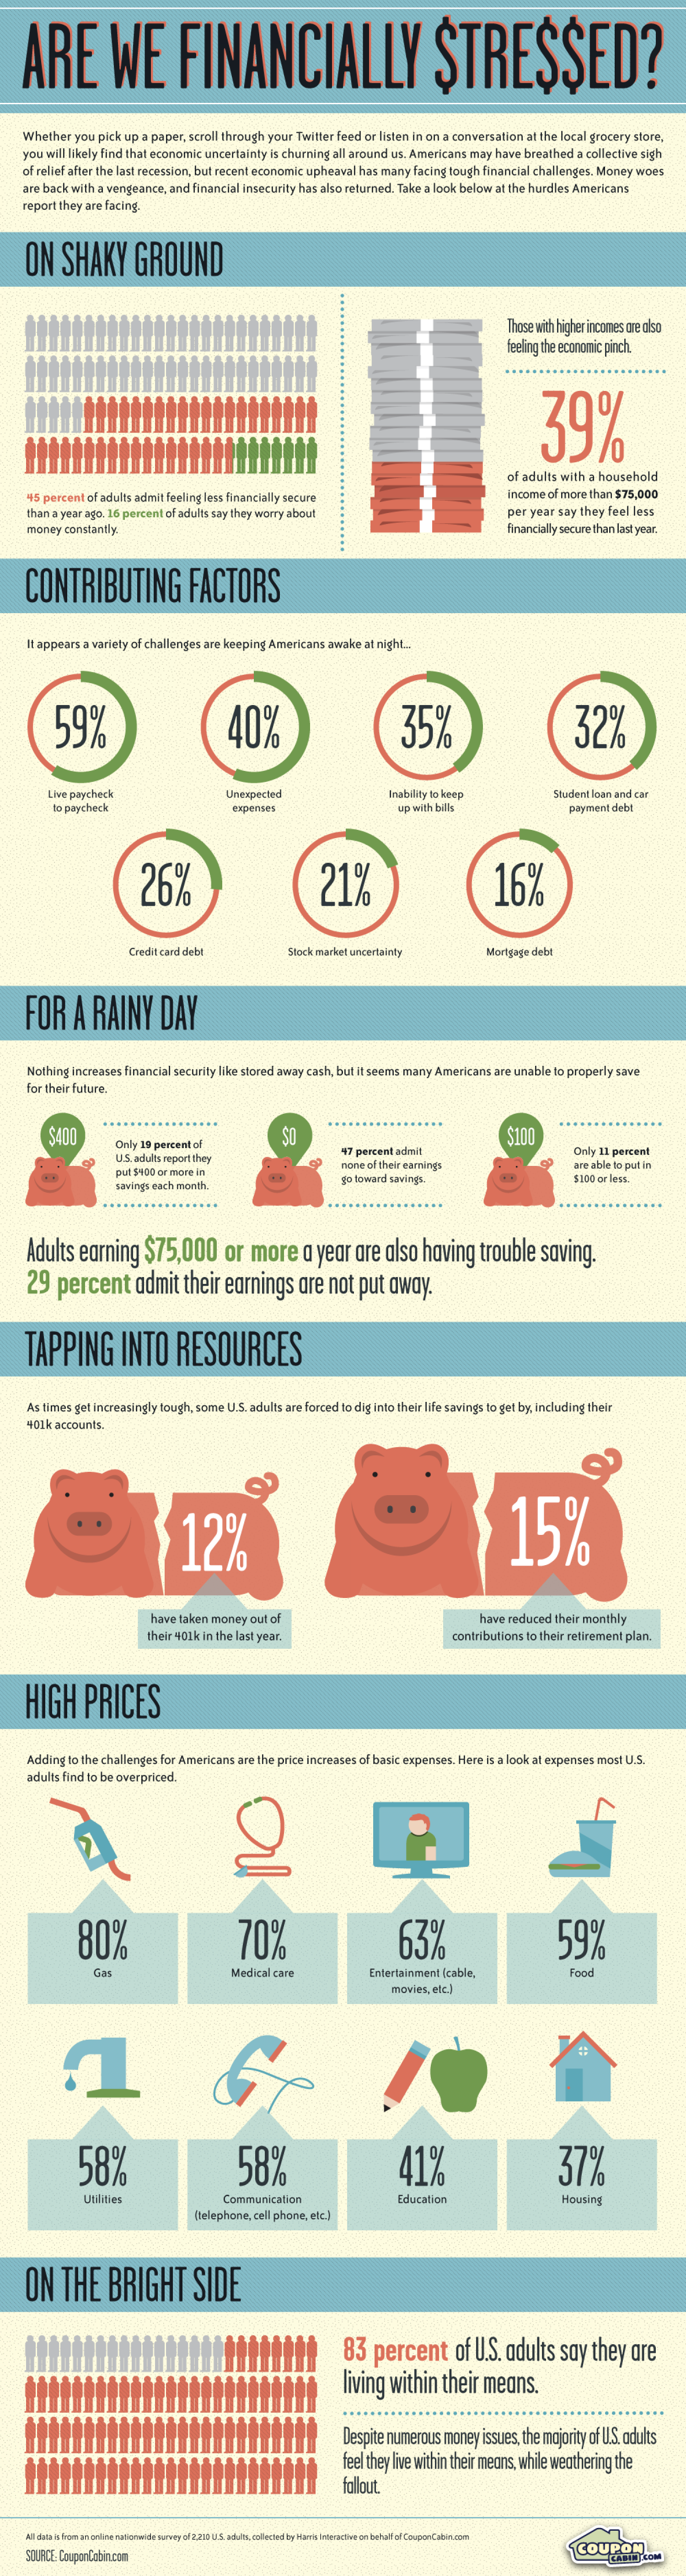 Are We Financially Stressed? Infographic